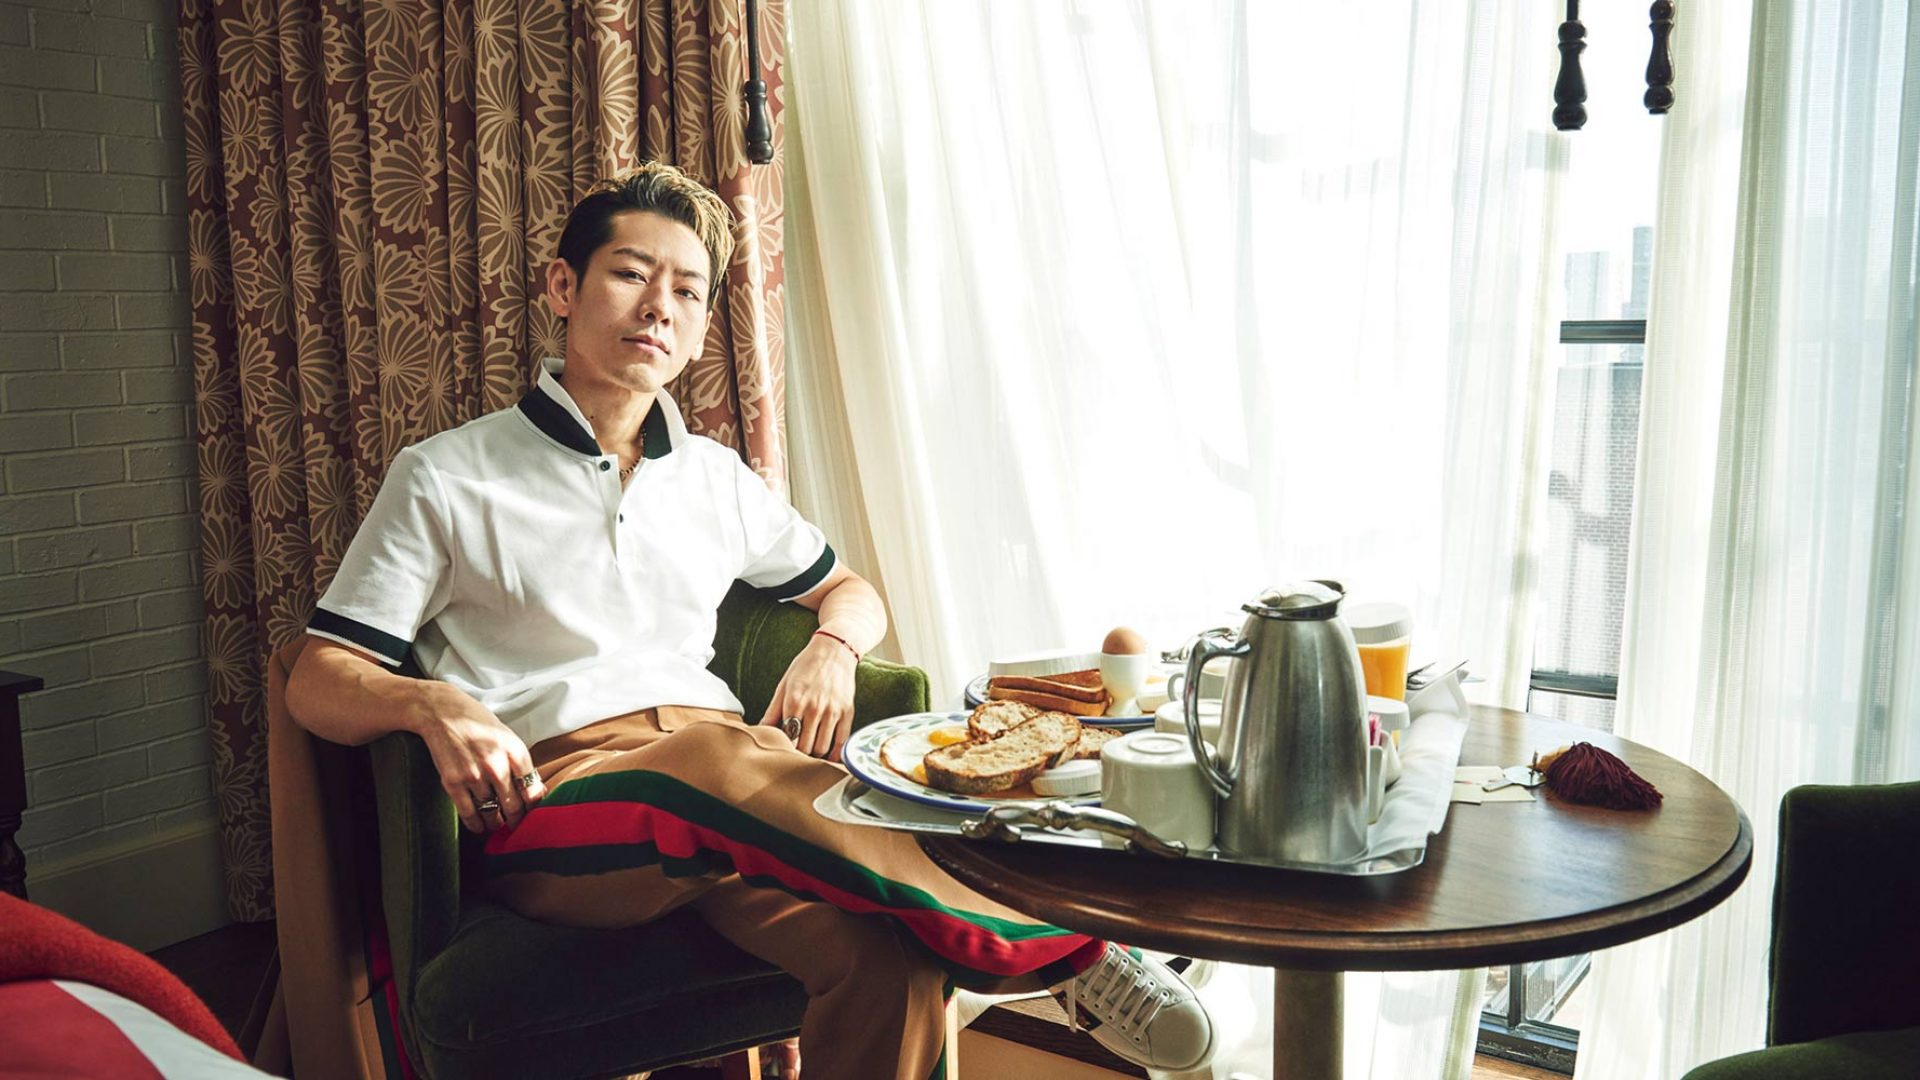 Takeru Kobiyashi sits in a hotel room with room service